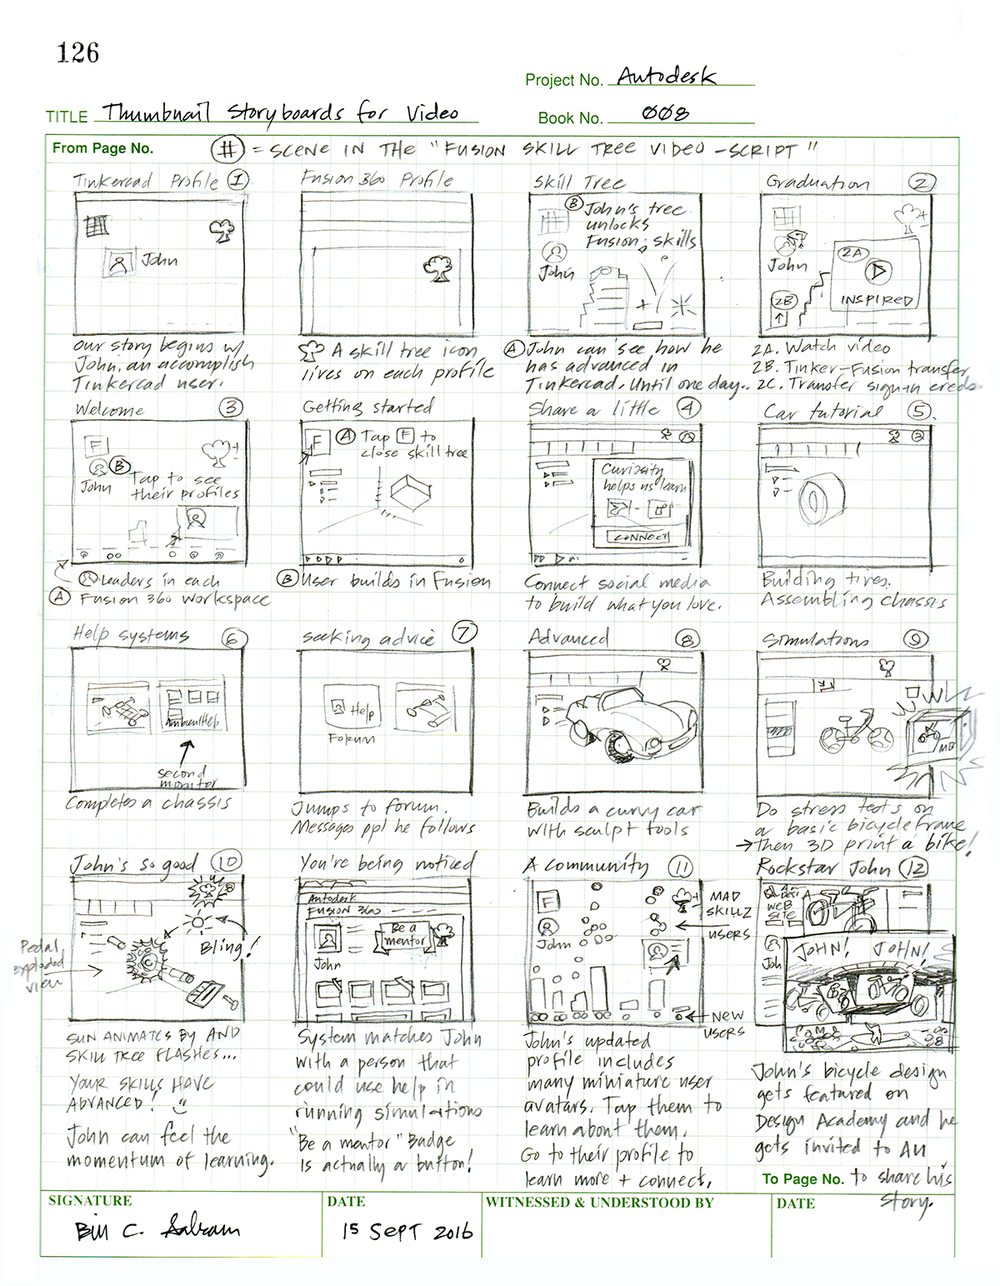 thumbnails-for-video-pg126-008.png